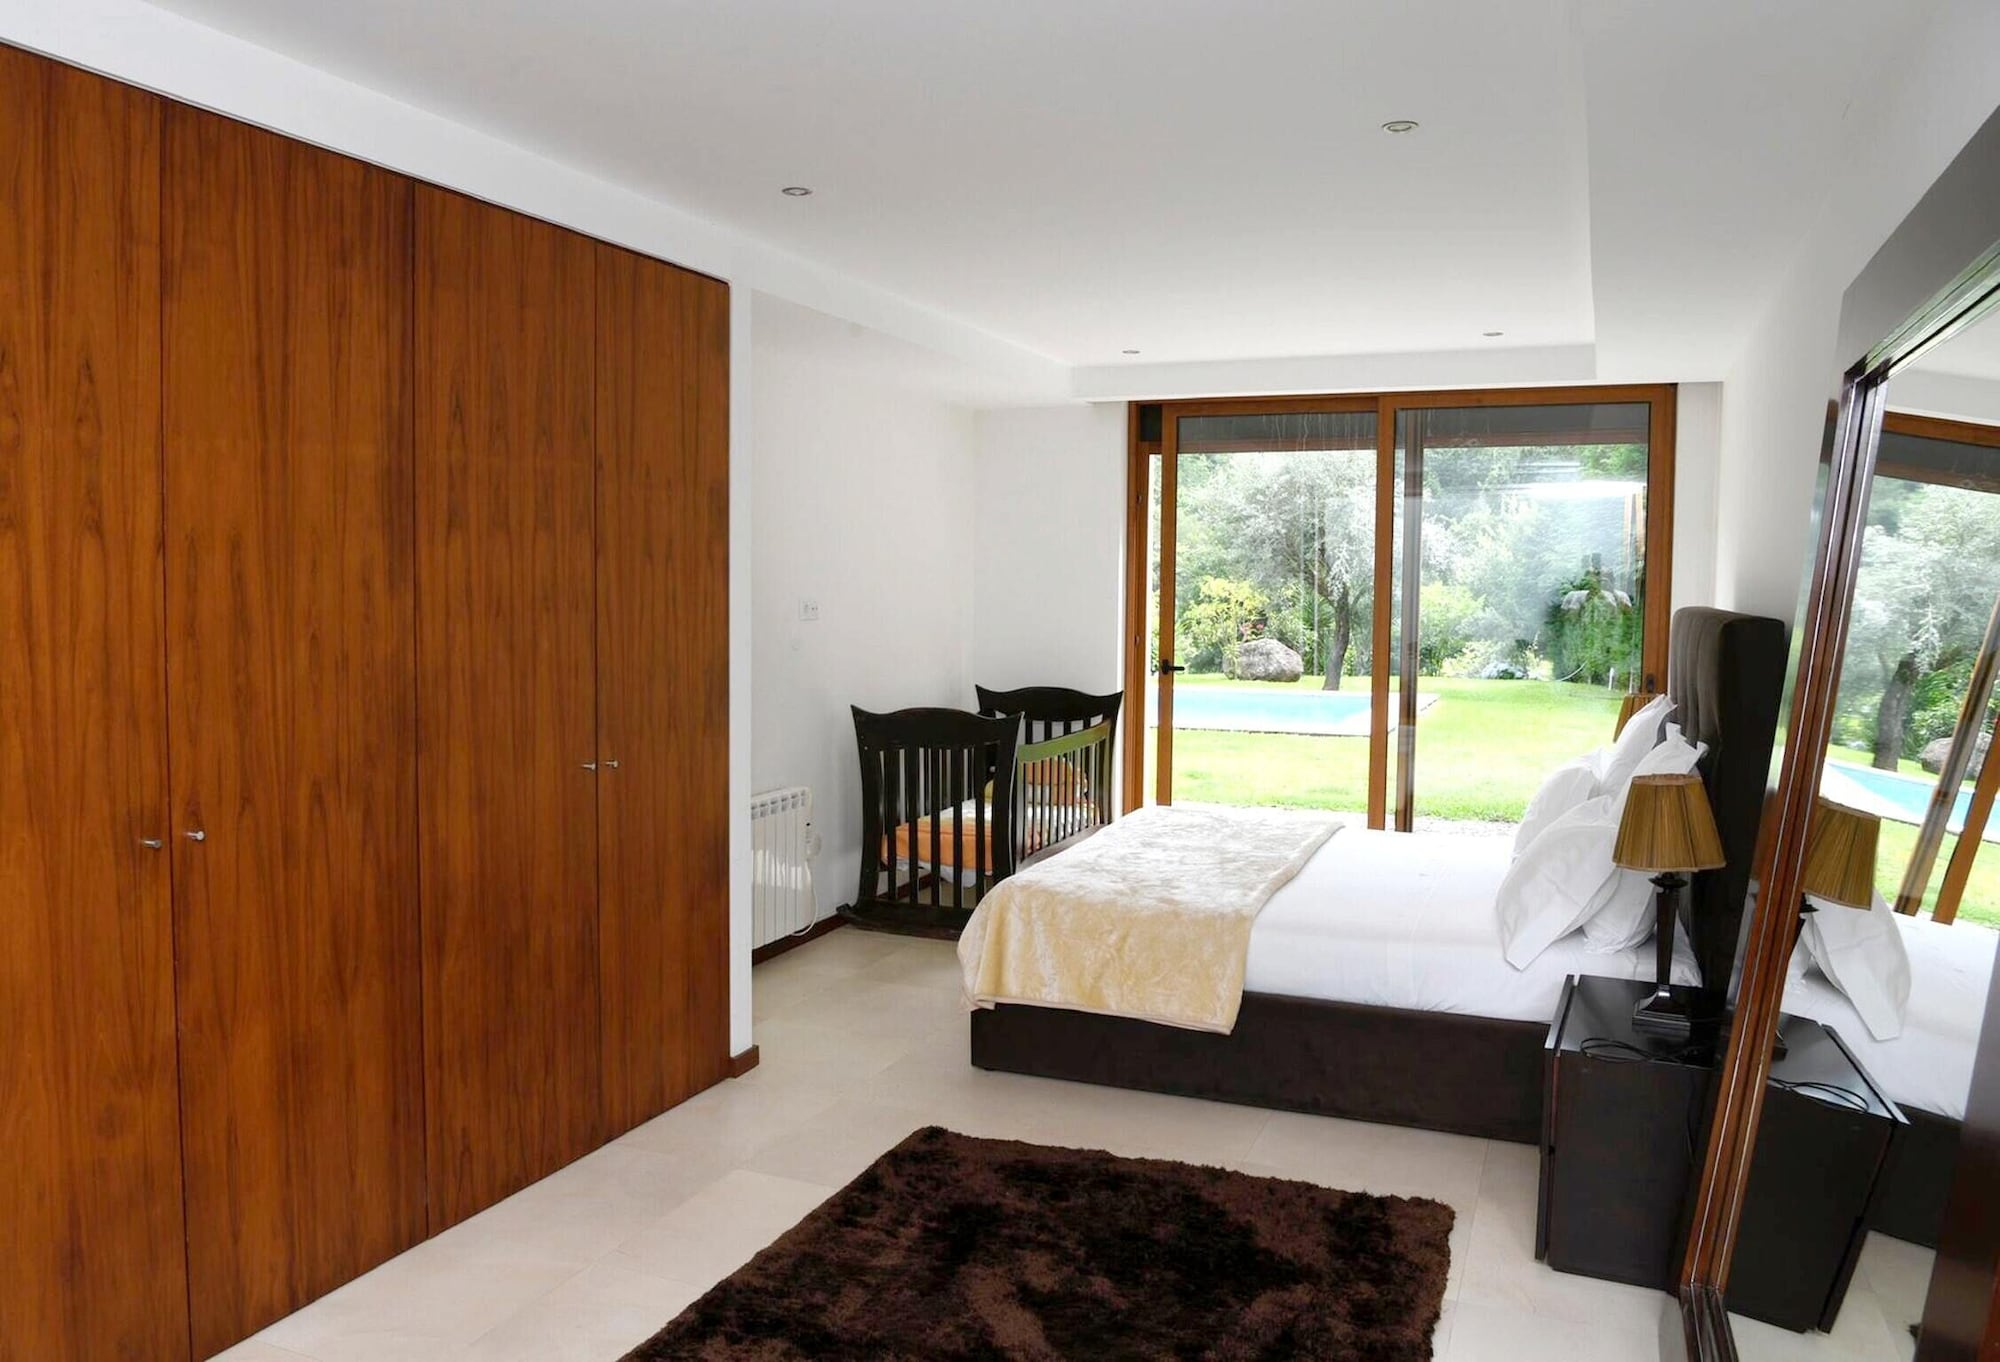 Villa With 4 Bedrooms in Caniçada, With Wonderful Mountain View, Private Pool, Furnished Garden, Vieira do Minho